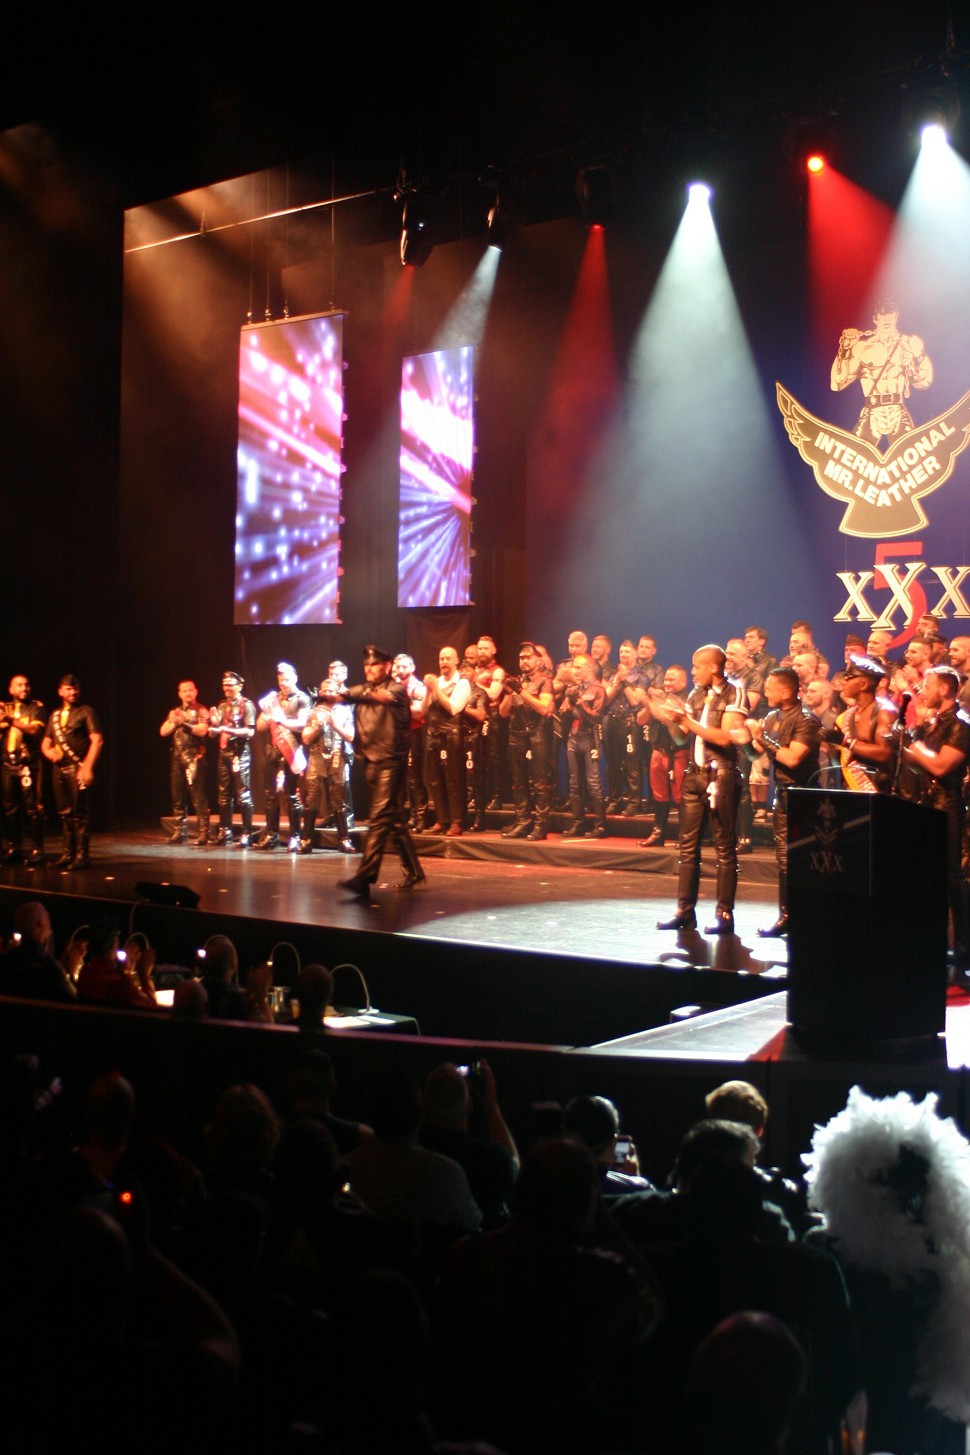 The 35th annual International Mr. Leather